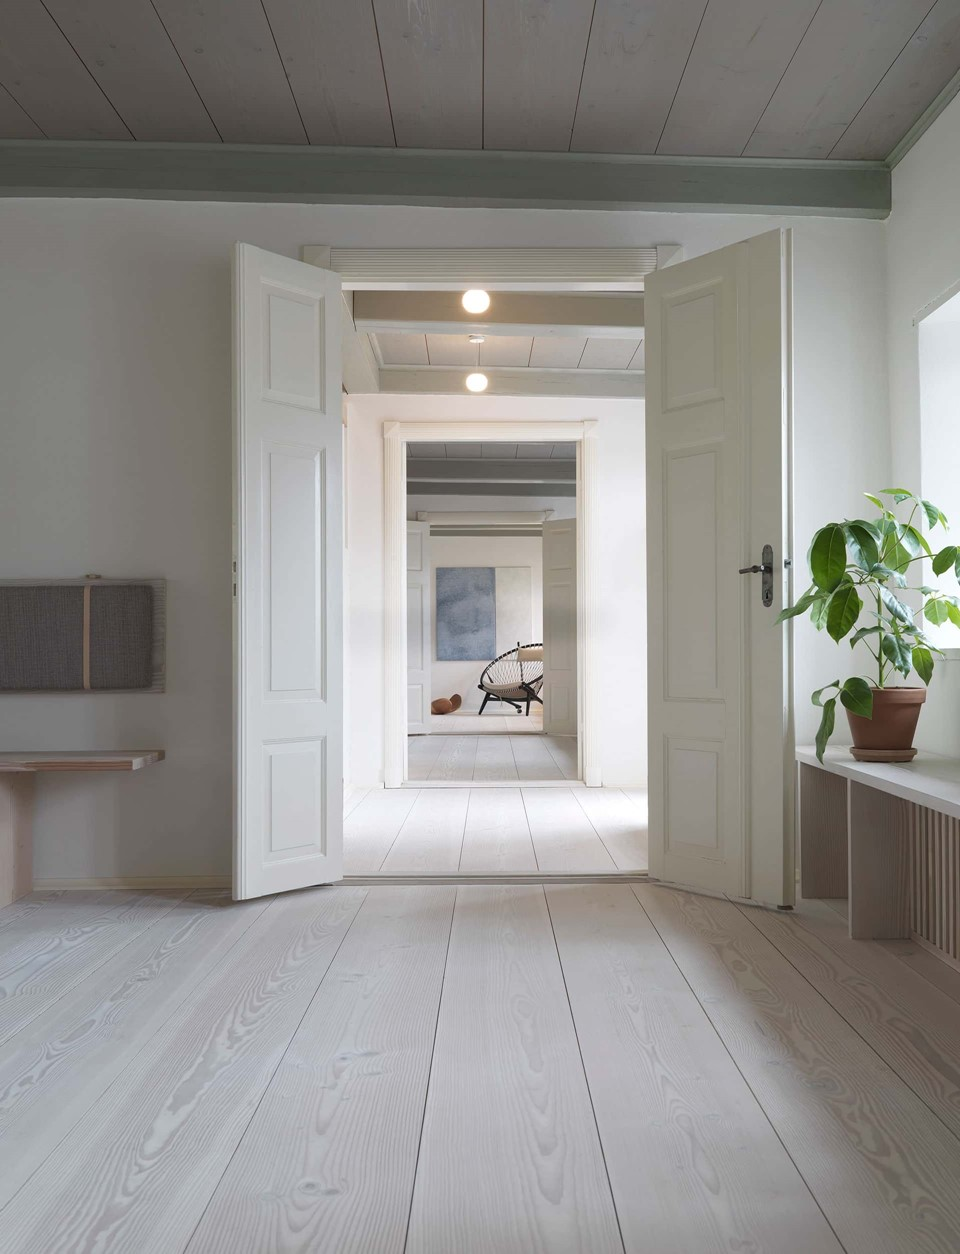 douglas fir floor lye white soap underfloor heating hallway dinesen country home.jpg